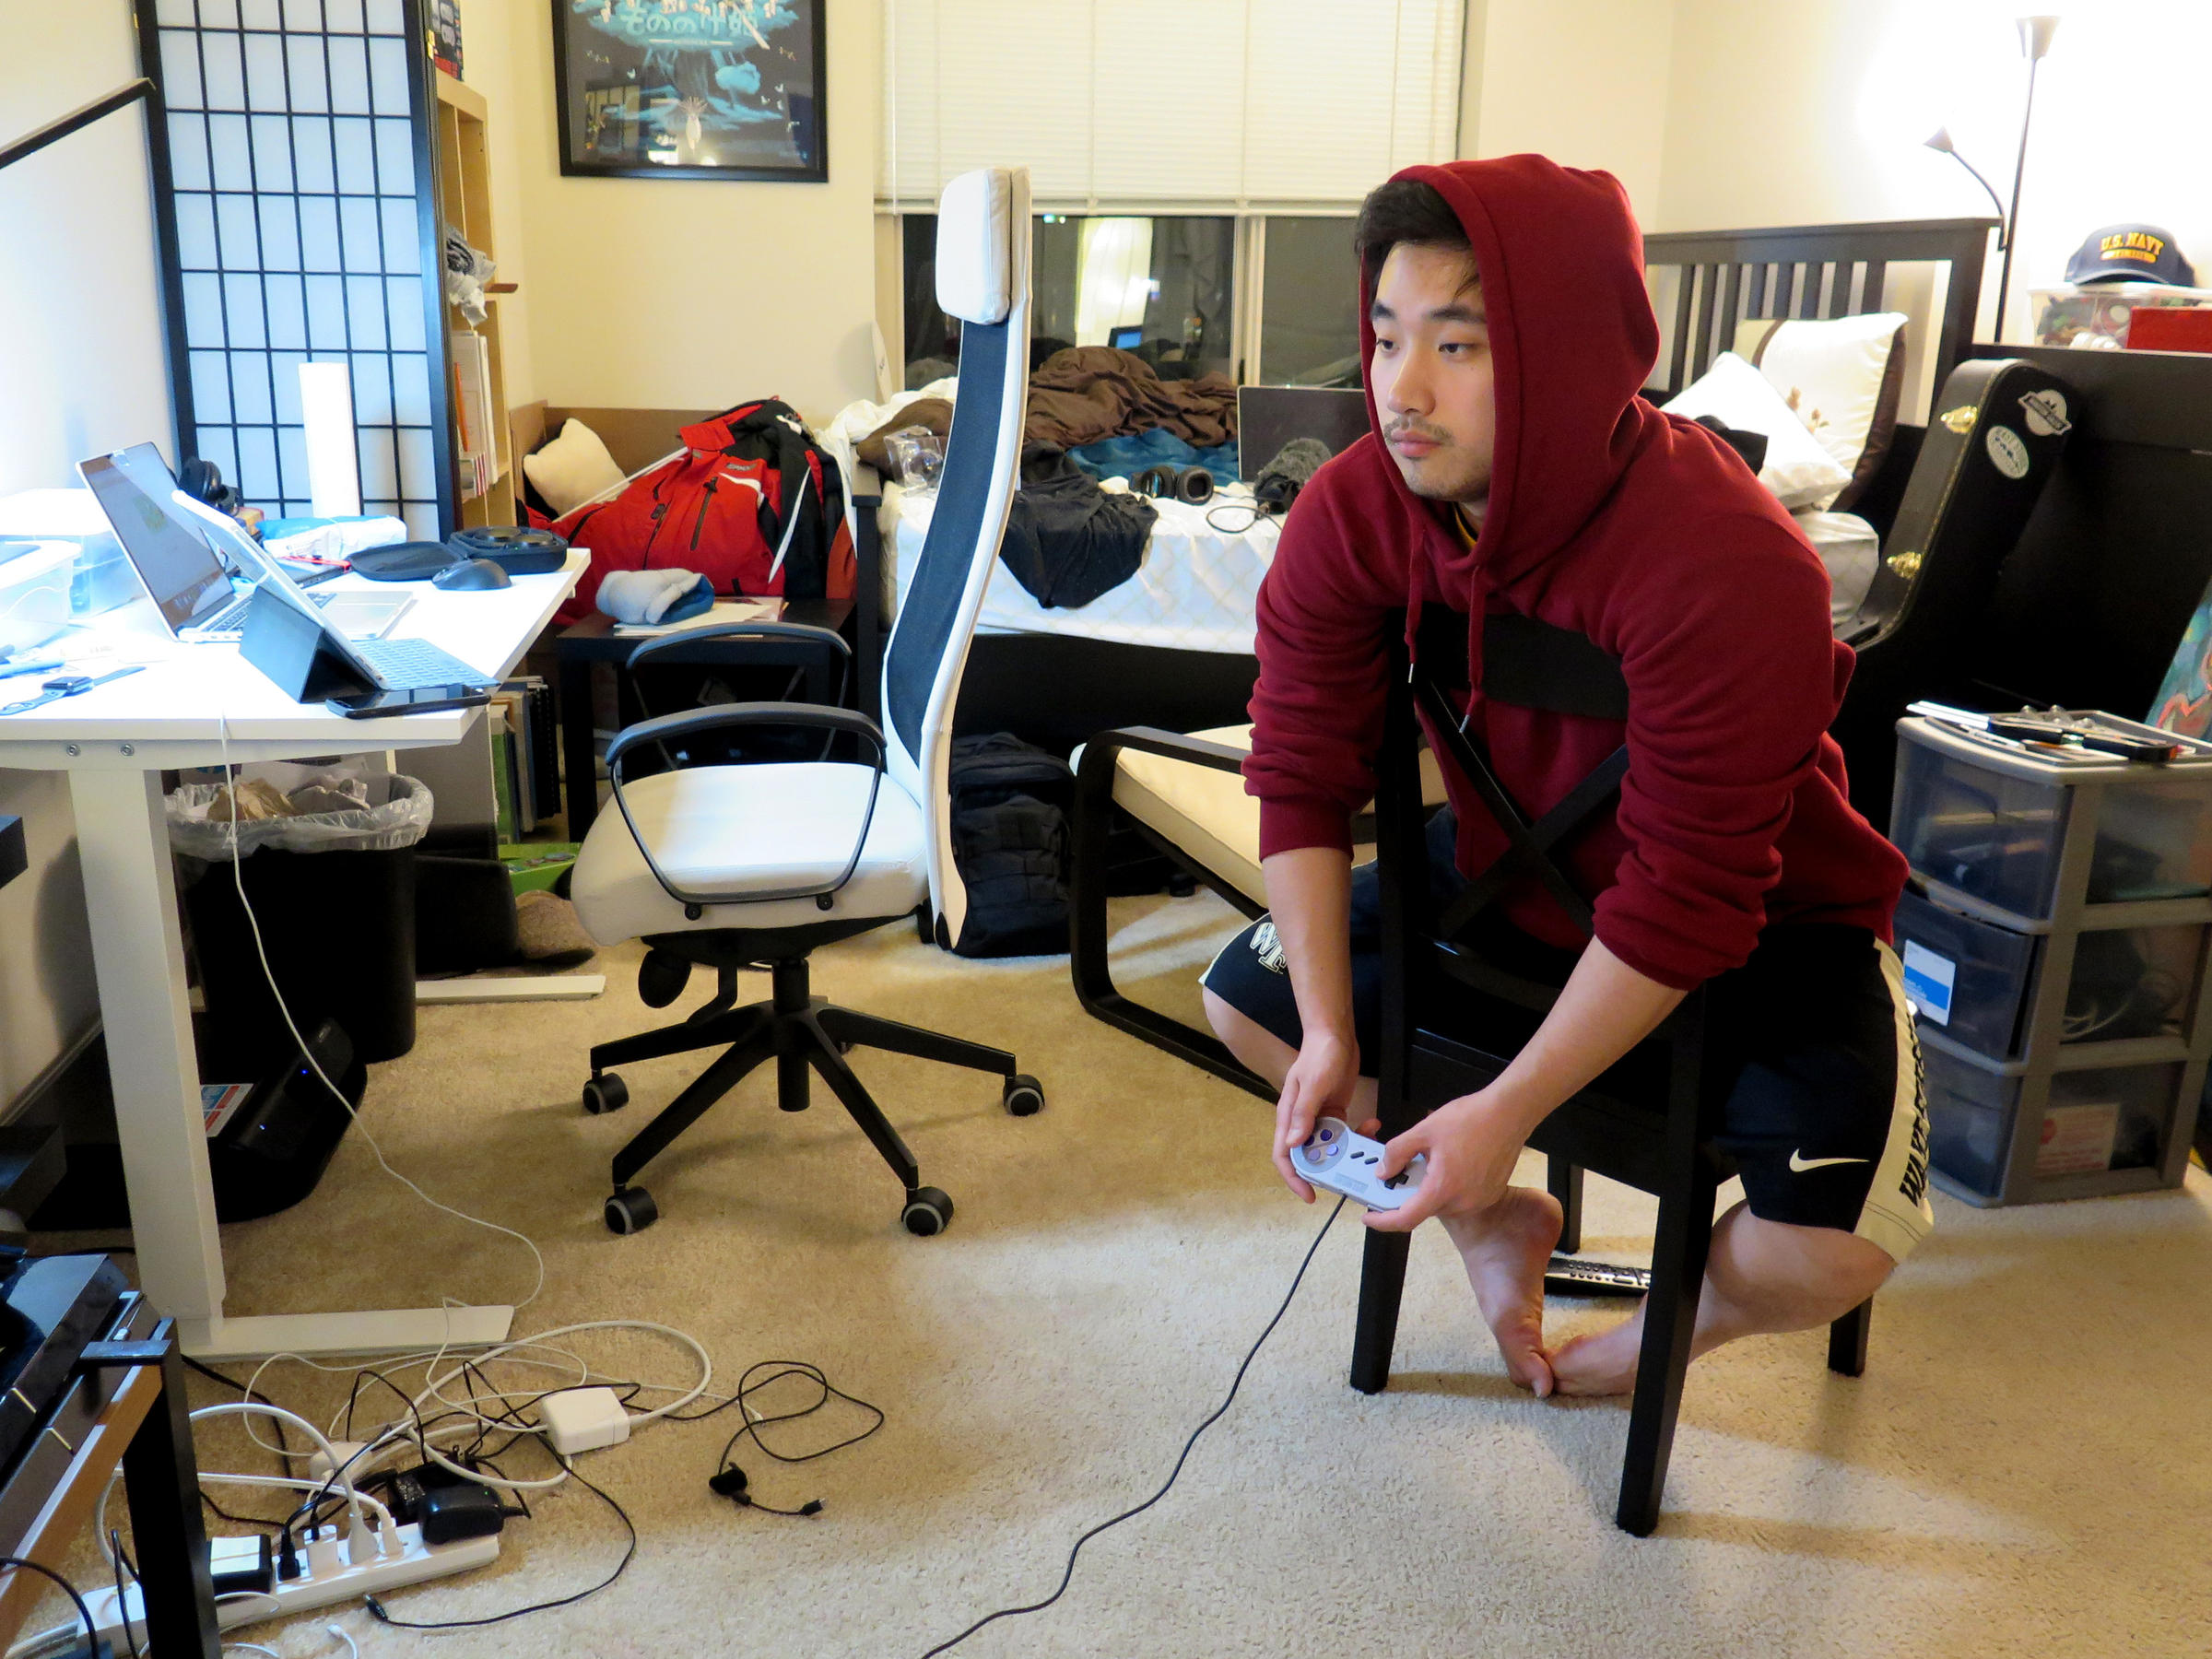 Retro-Games And Consoles Are The Latest Craze In The Gamer World | KUNC